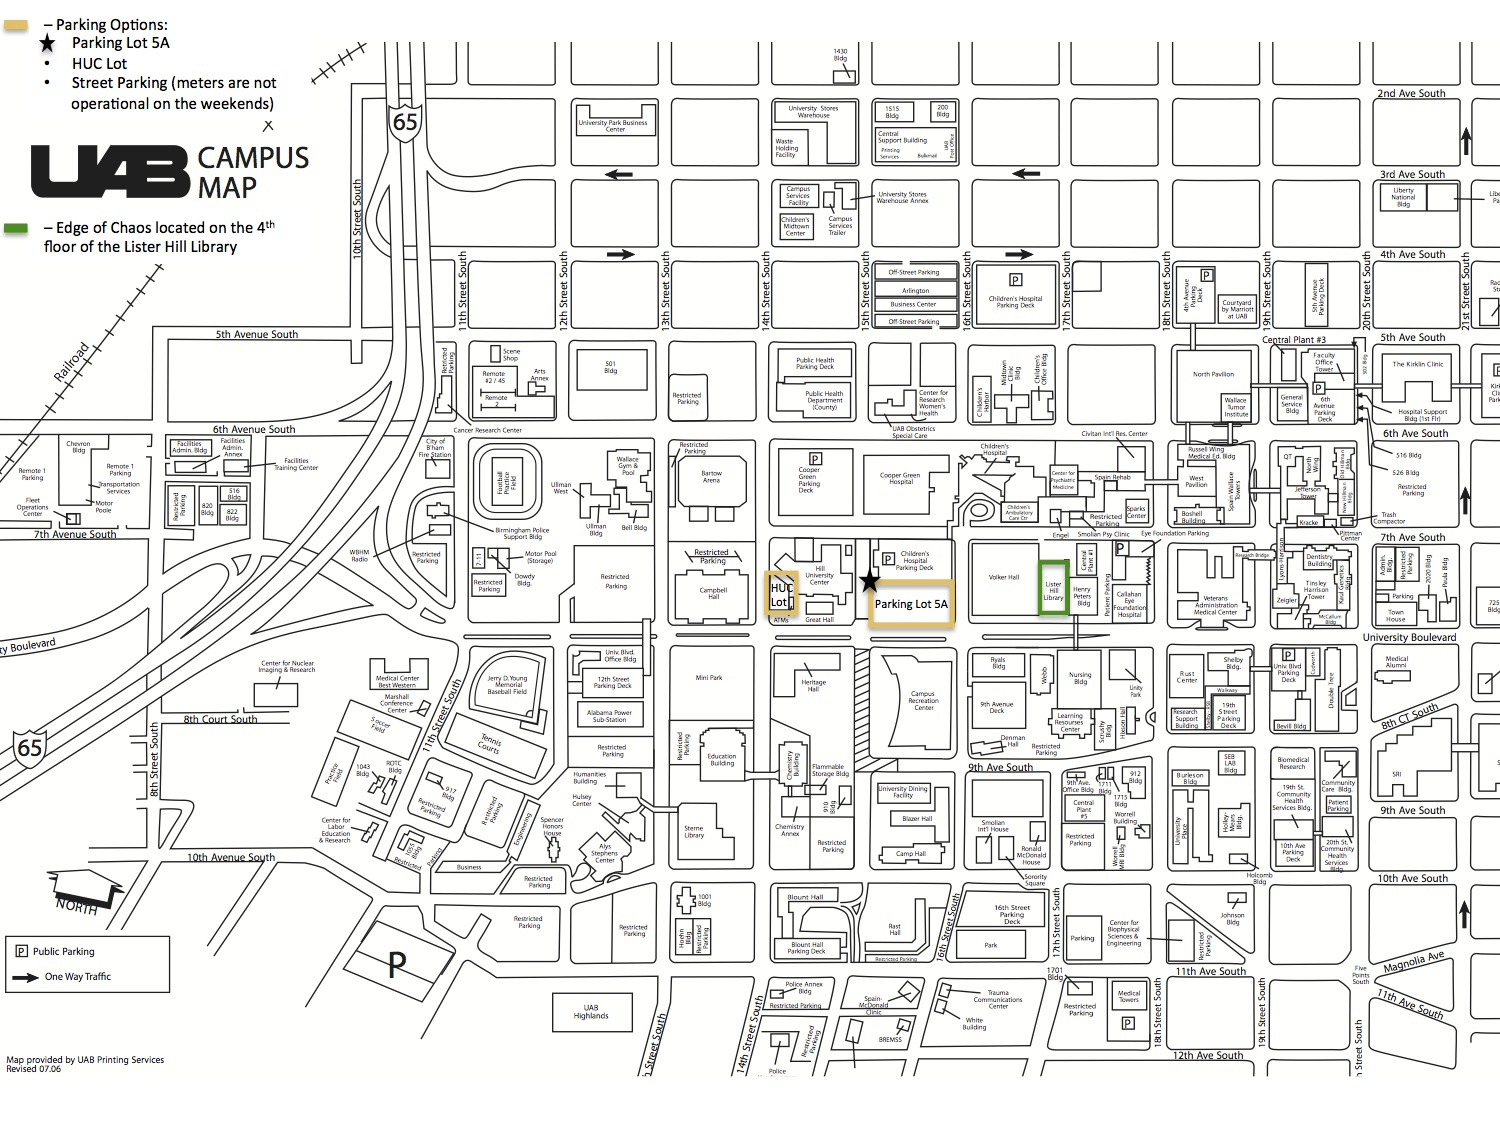 Directions - in Bee   UAB on samford university parking map, uab highlands map, auburn university parking map, university hospital campus map, uab north pavilion map, alabama colleges and universities map, uab map.pdf, alabama campus map, uab campus green, uab medical center map, uab hospital birmingham map, uab parking lots, uab student parking, alabama parking map, uab interactive campus map, uab school map, uab campus dining map, uab parking deck map, uab building map,